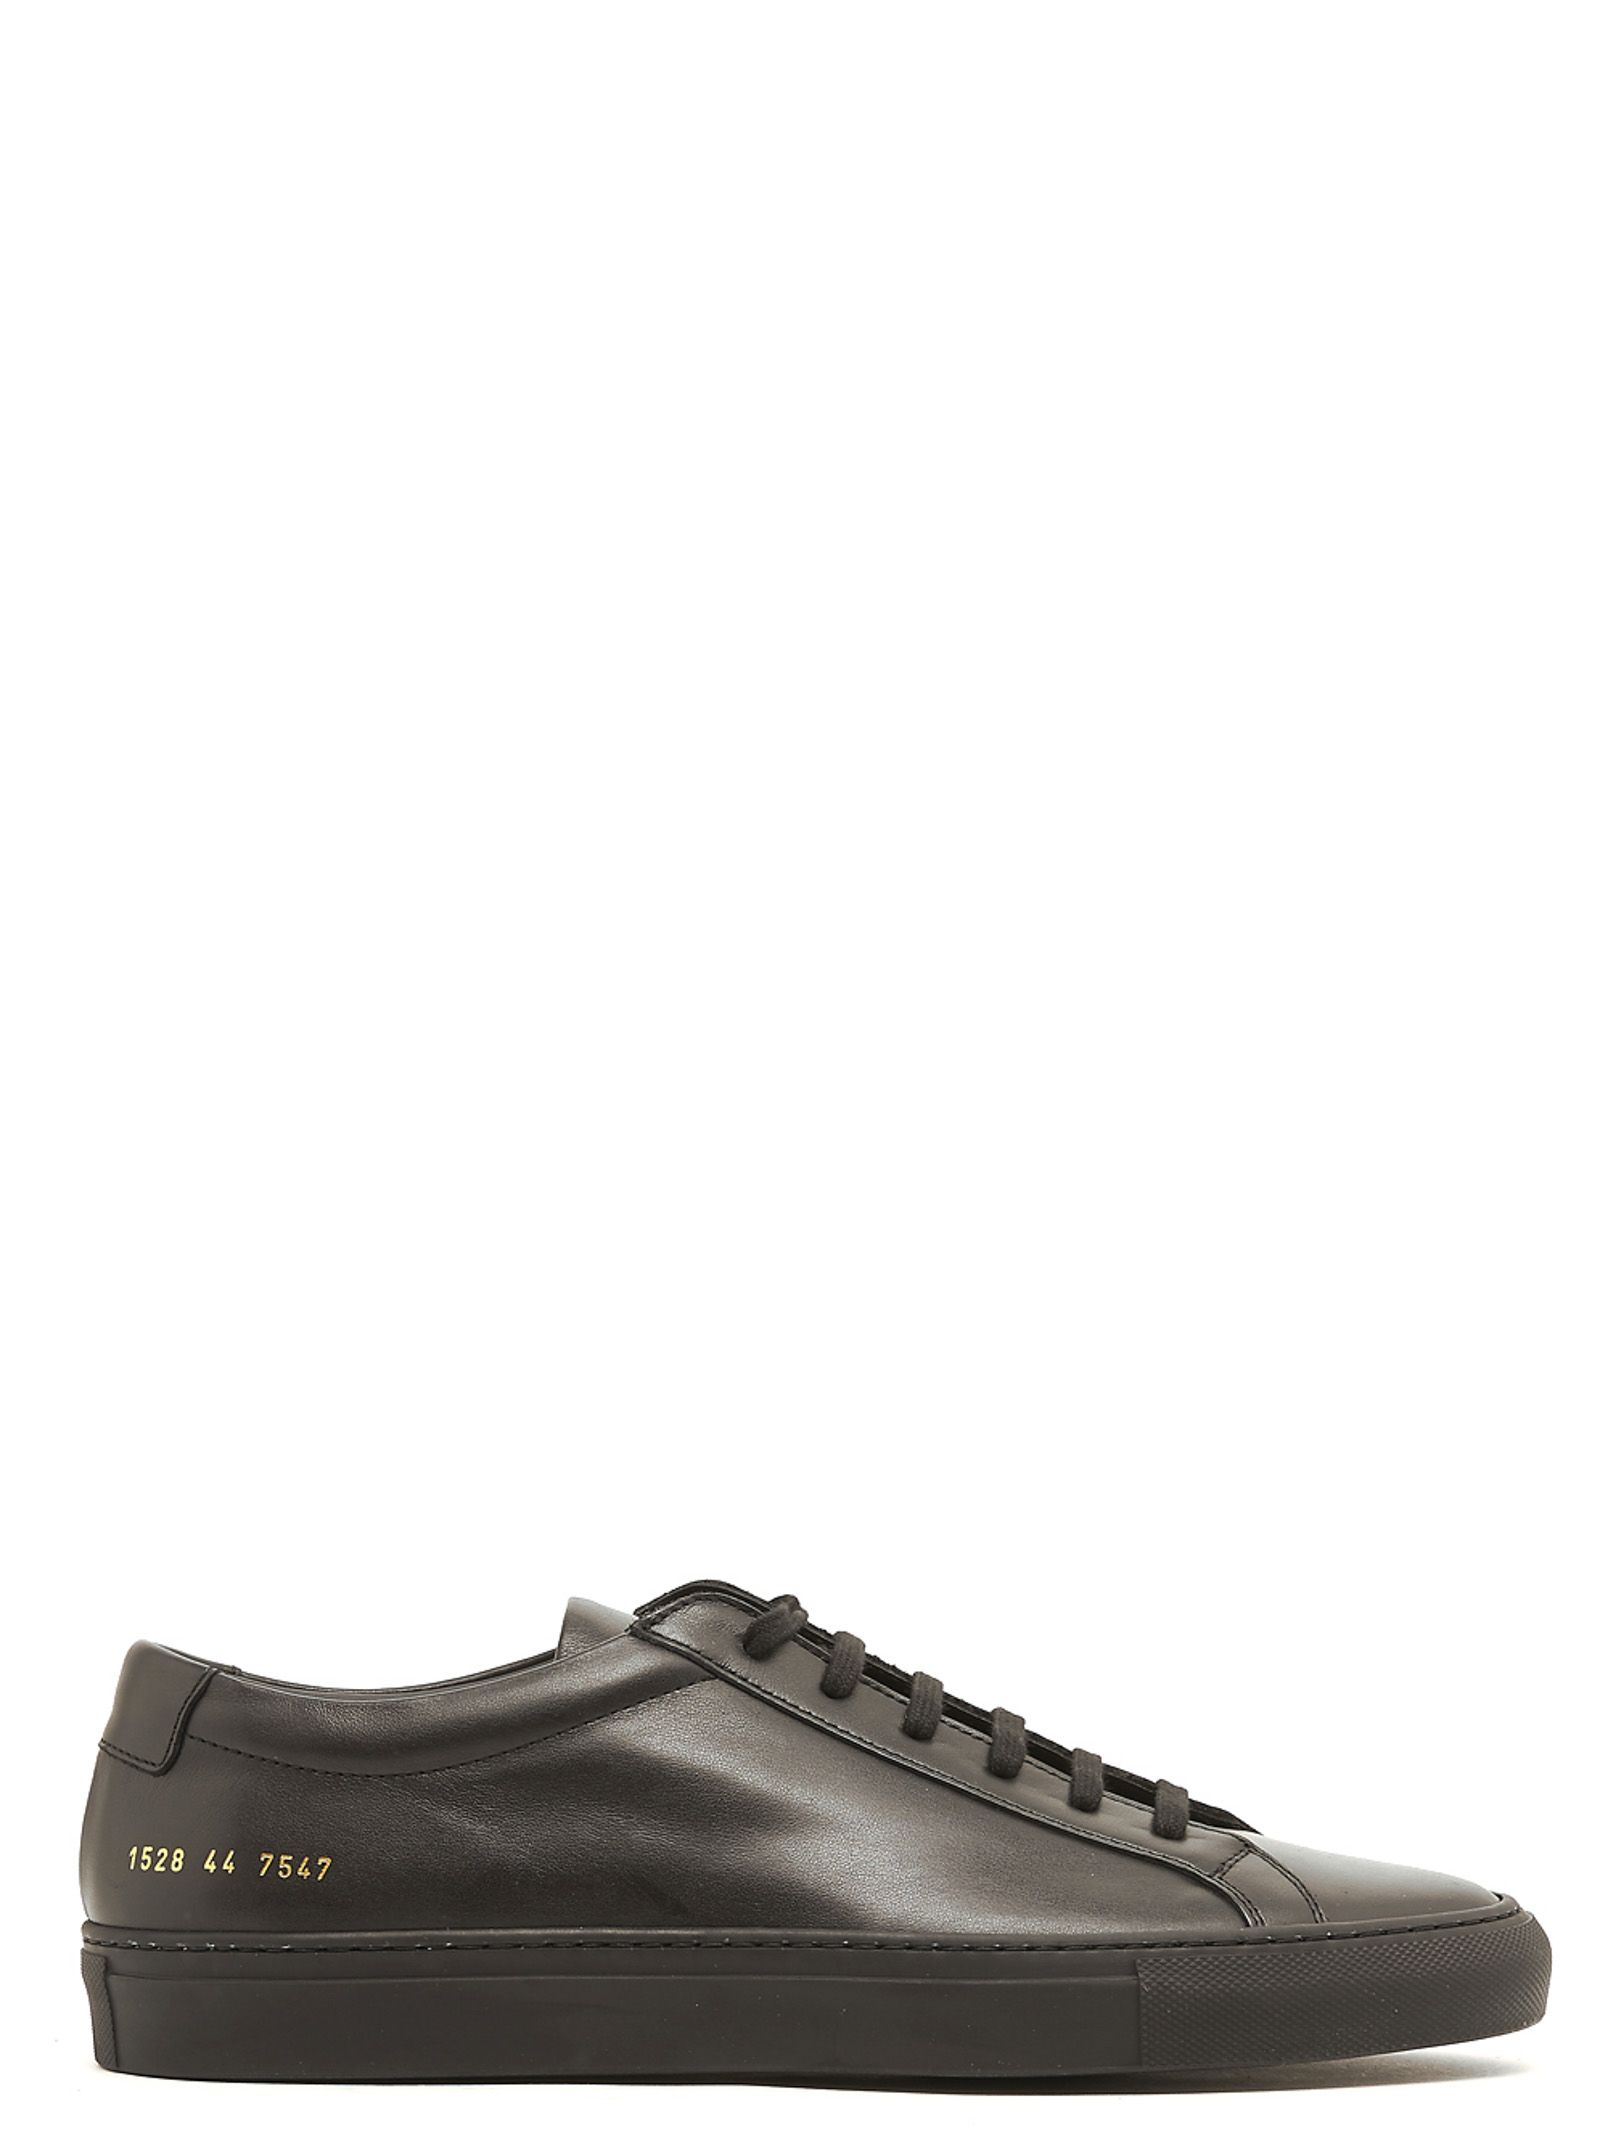 COMMON PROJECTS Original Achilles Patent Leather Low-Top Trainers, Black